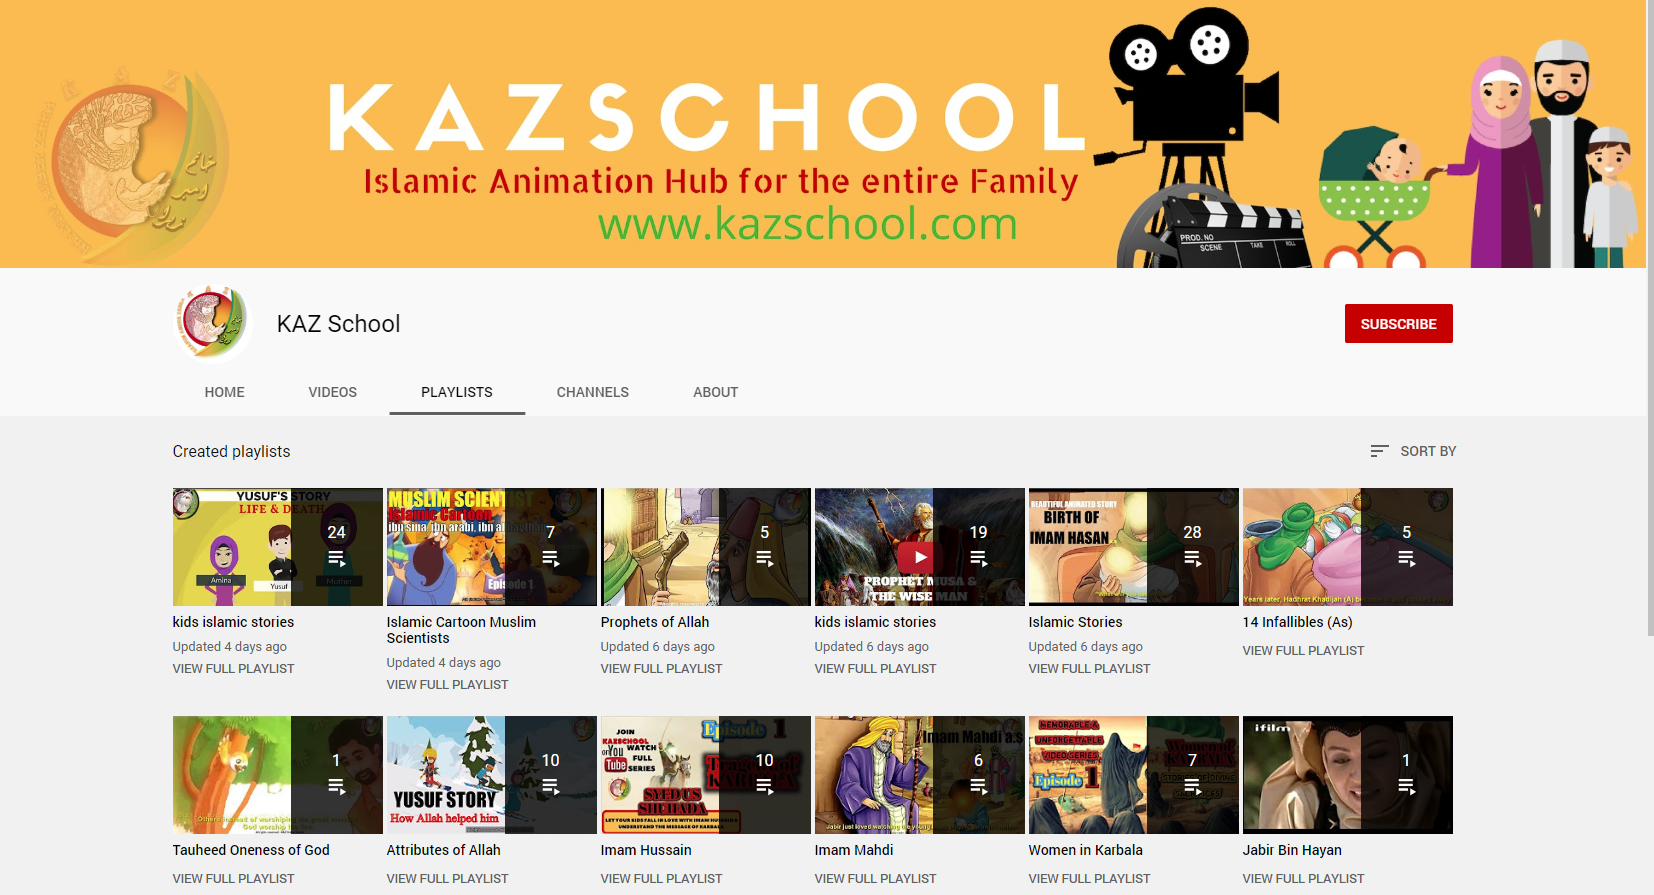 Muslim TV programmes/movies/channels – Idea 15: KAZ School